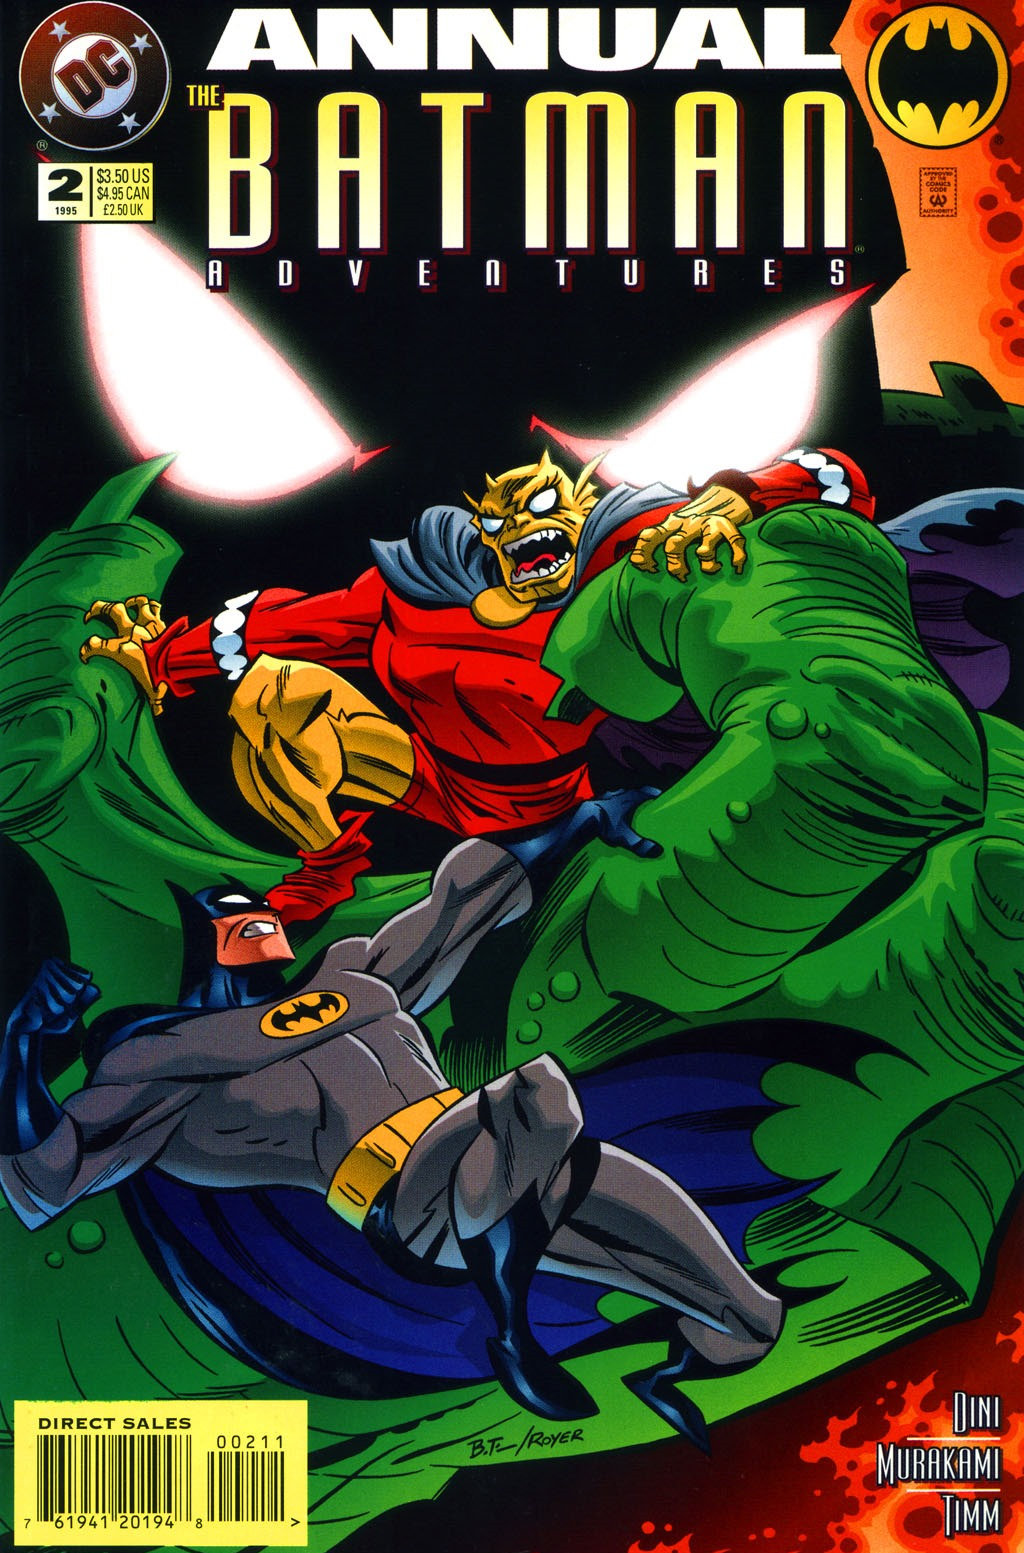 Batman Adventures Annual (1994) #2, cover penciled by Bruce Timm & inked by Mike Royer.